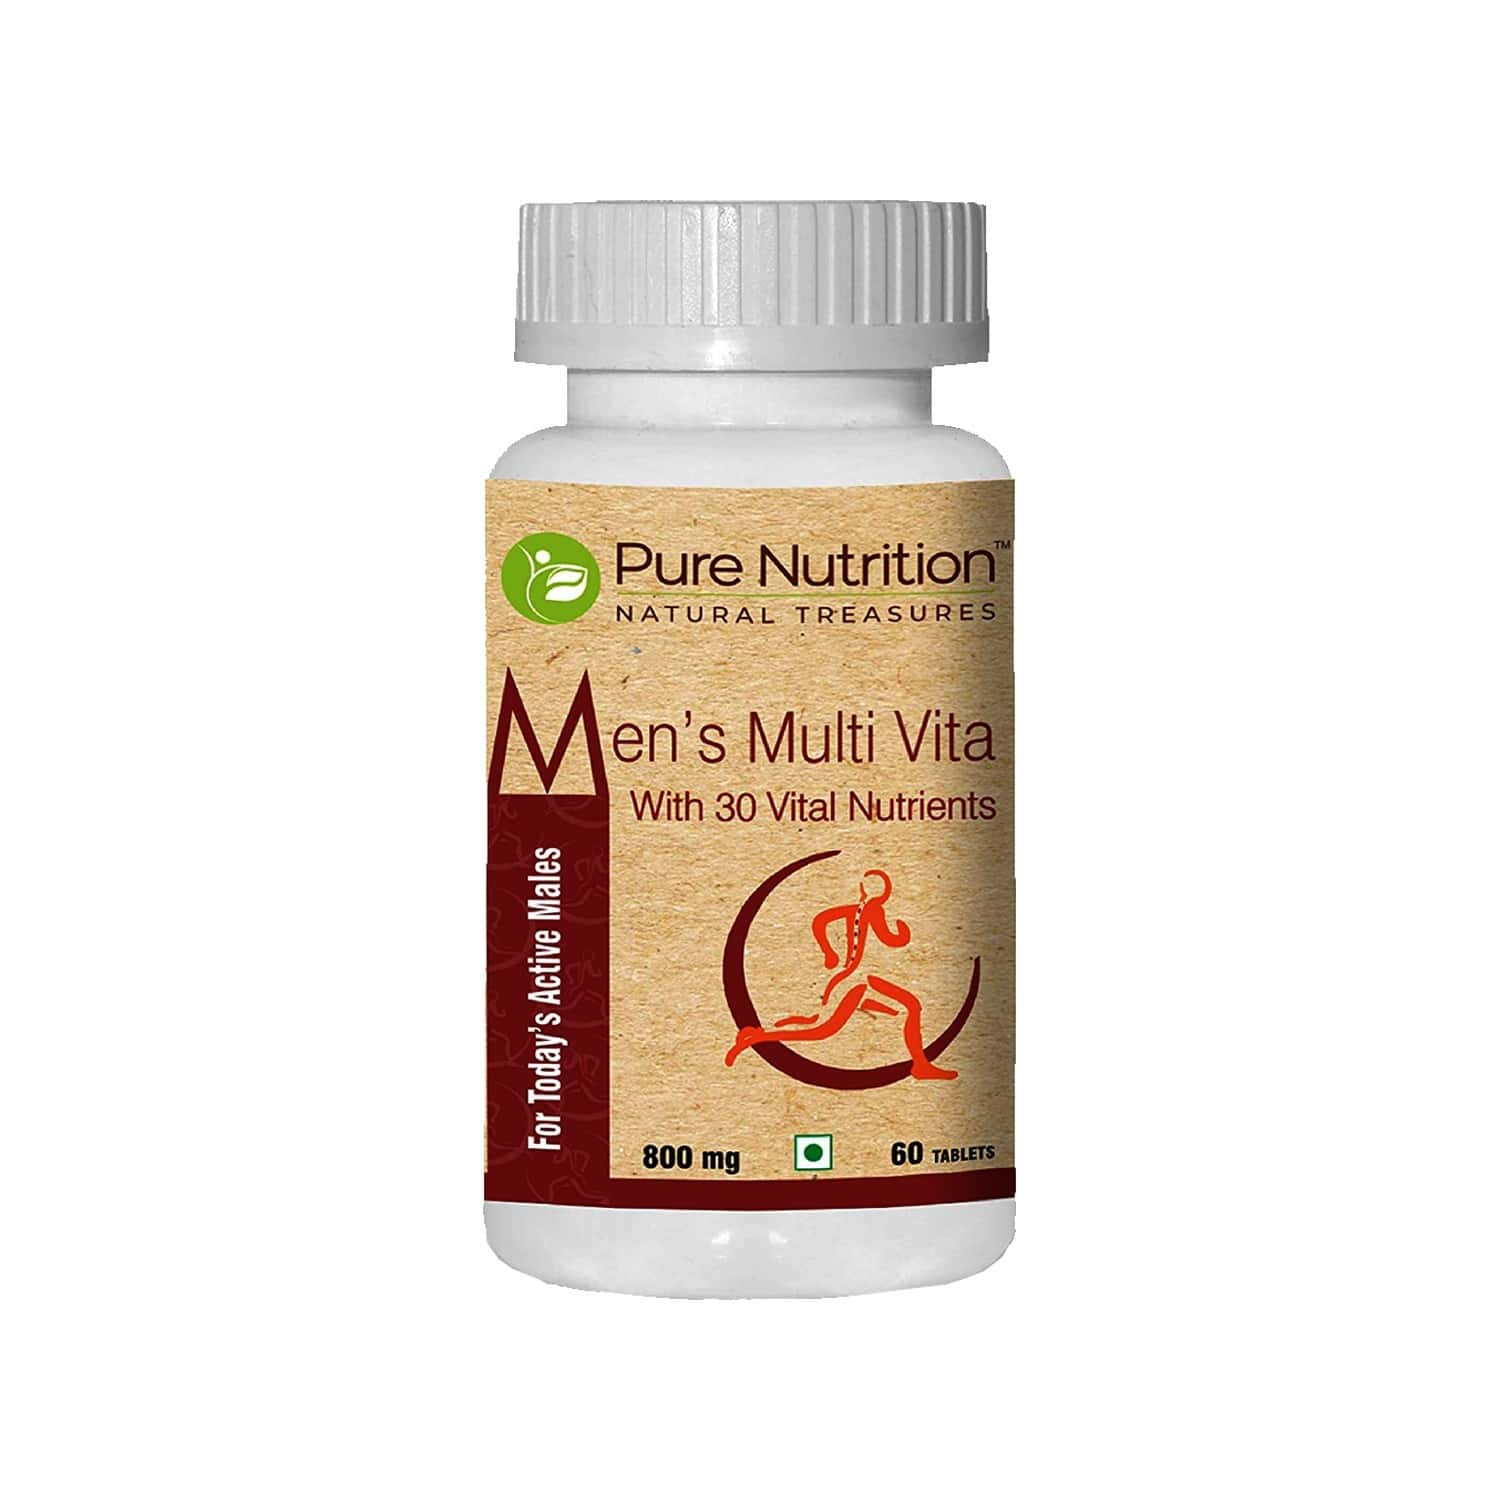 Pure Nutrition Mens Multi Vita, Fortified With 30 Bioactive Vital Nutrients With Ginseng Extracts, Omega 3 And Multi Minerals - 60 Tablets